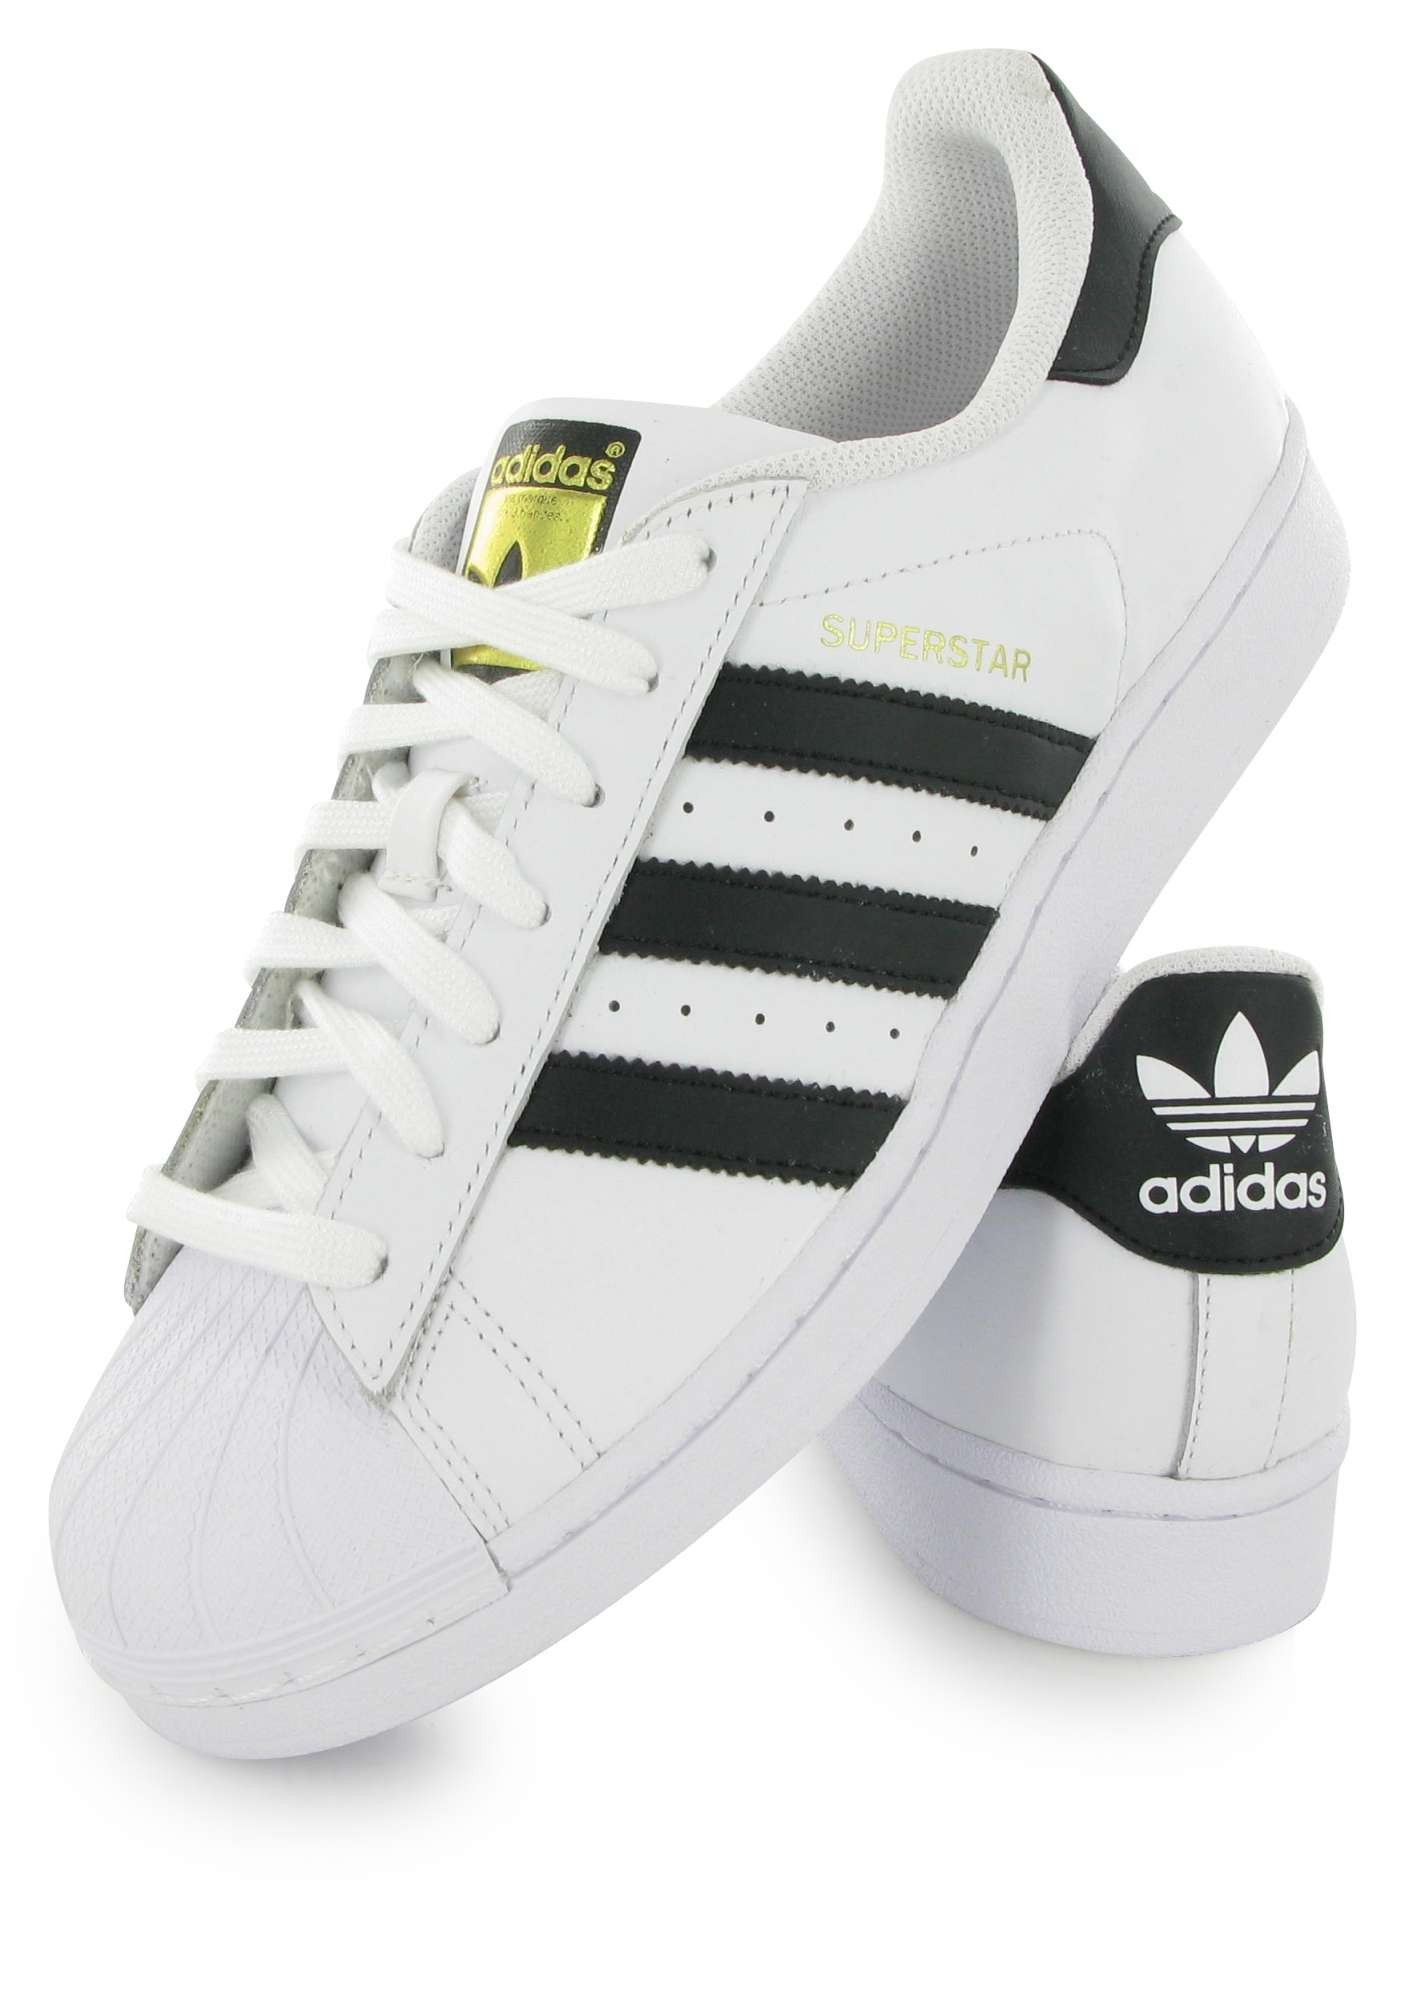 wholesale dealer 1f89a e6e9c adidas superstar femme prix france